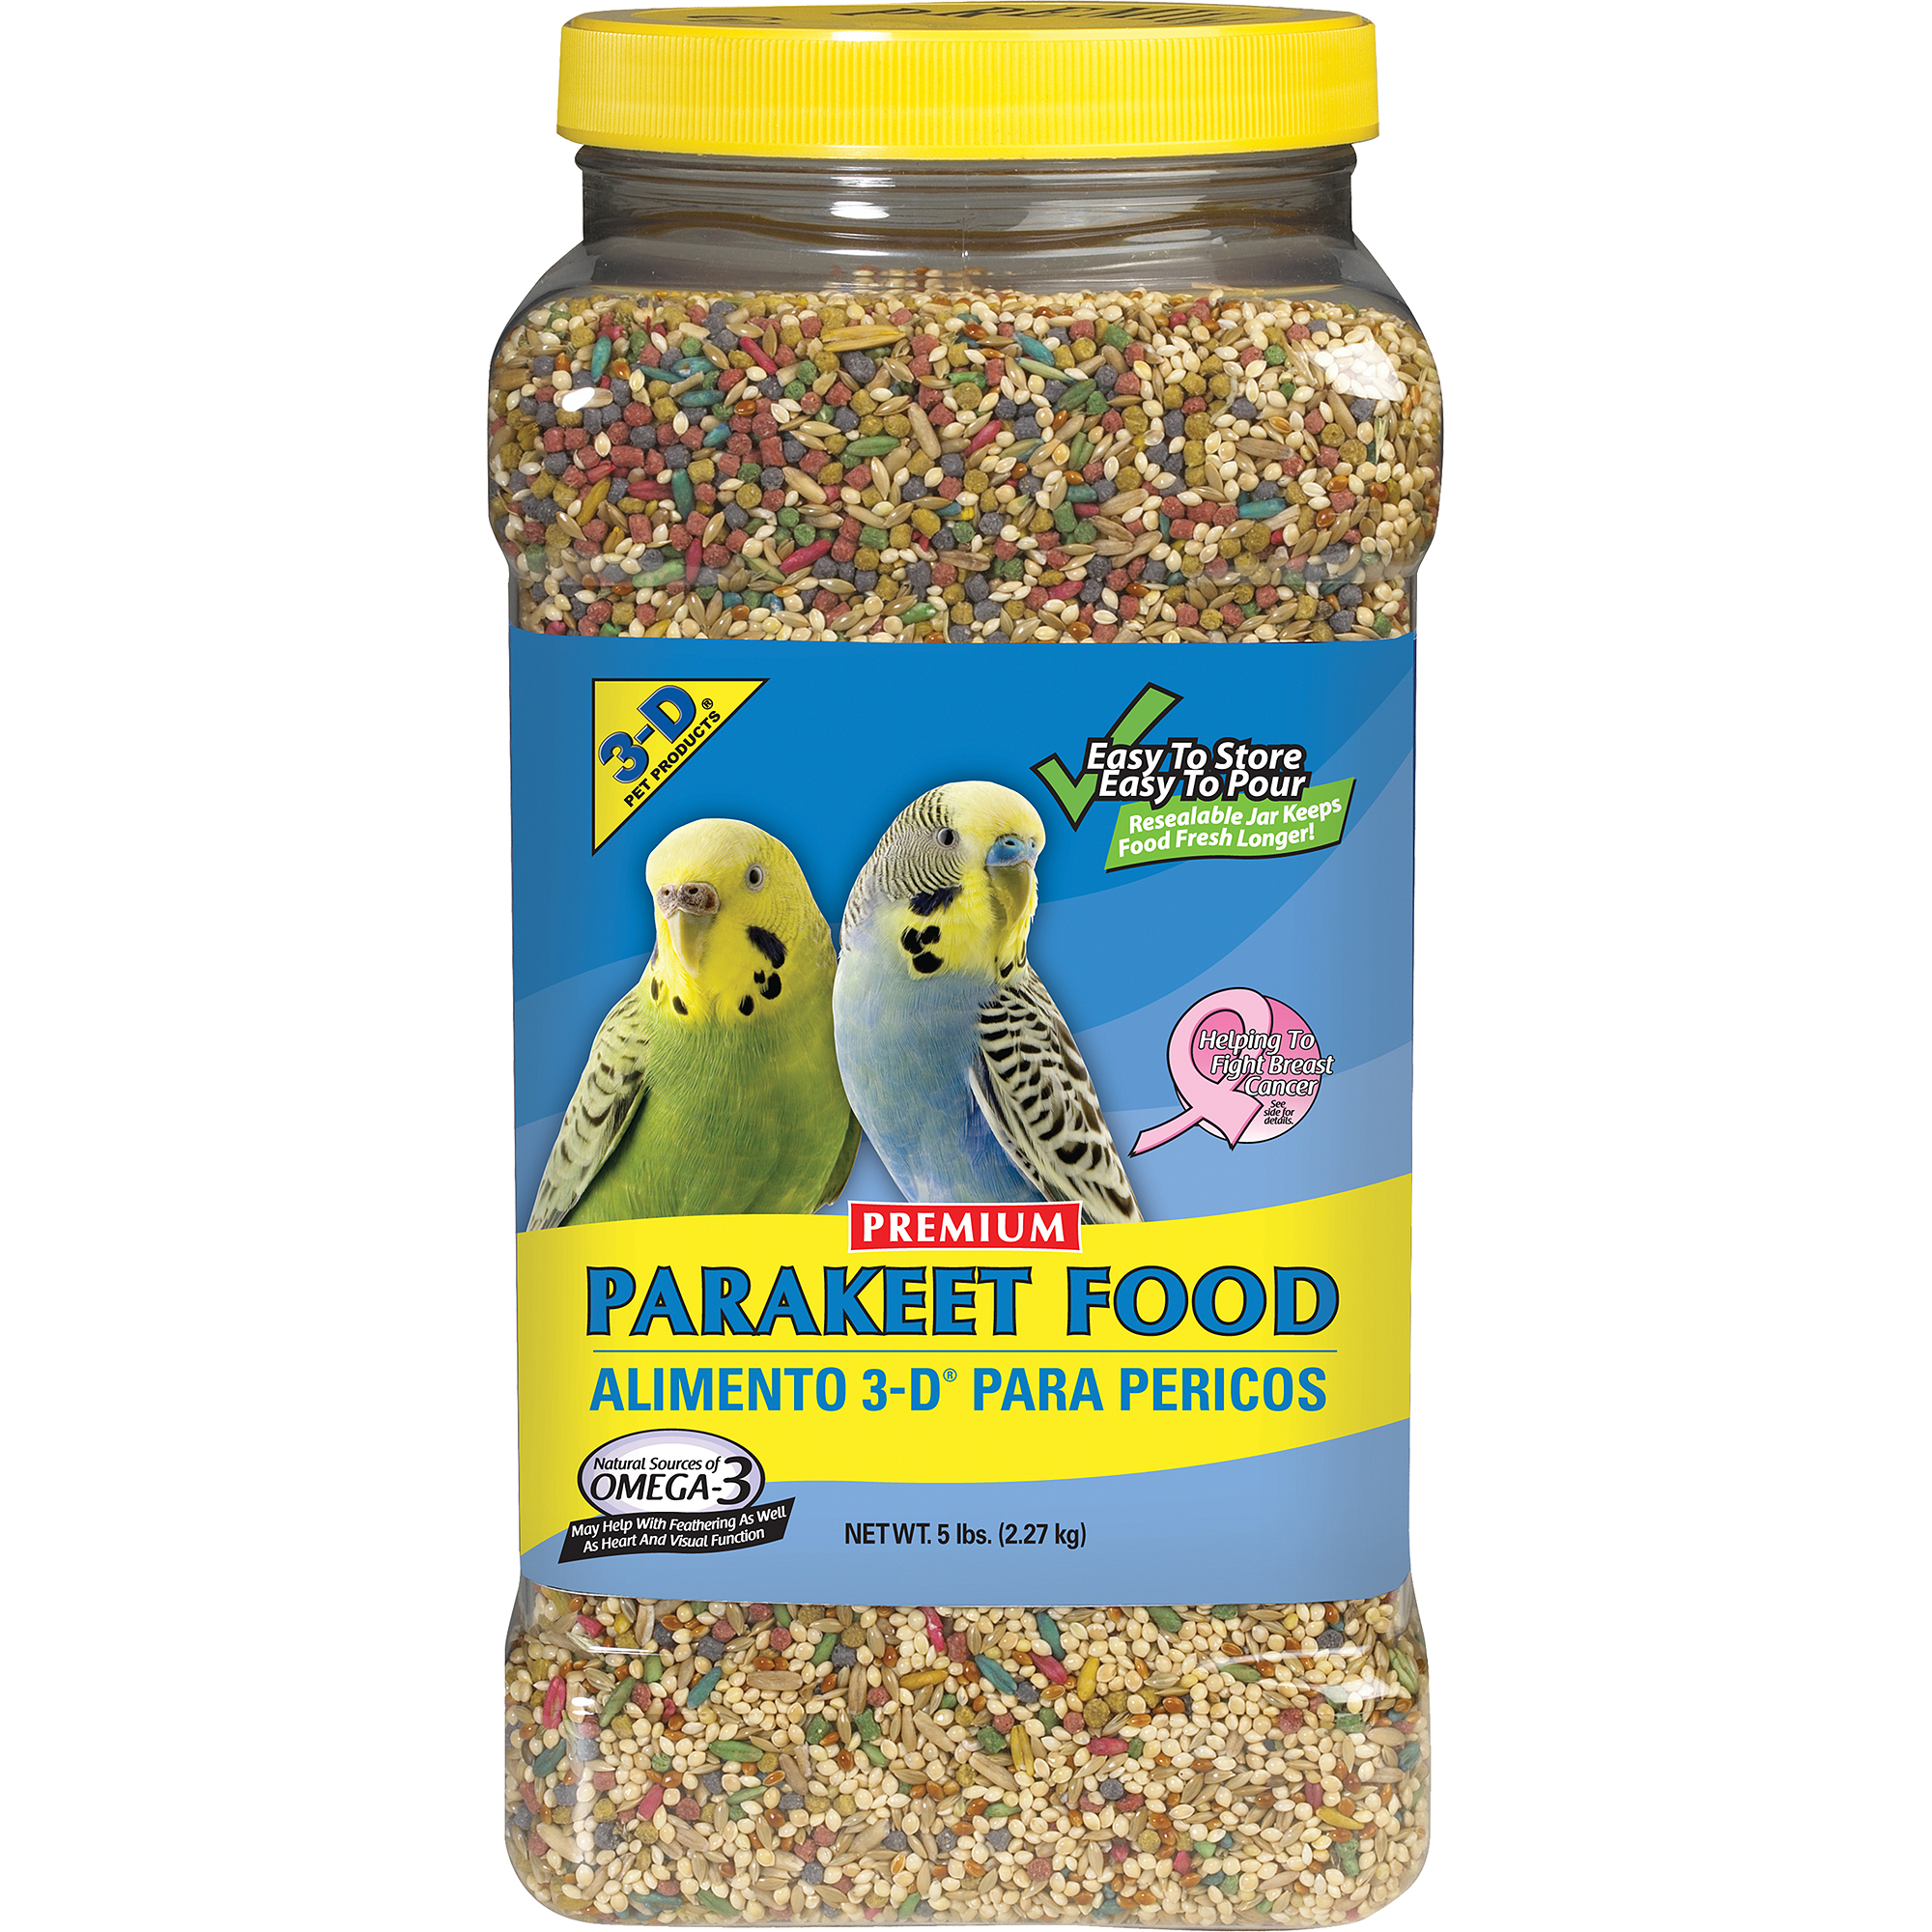 Question about parakeets; buy from family owned or business corporations?